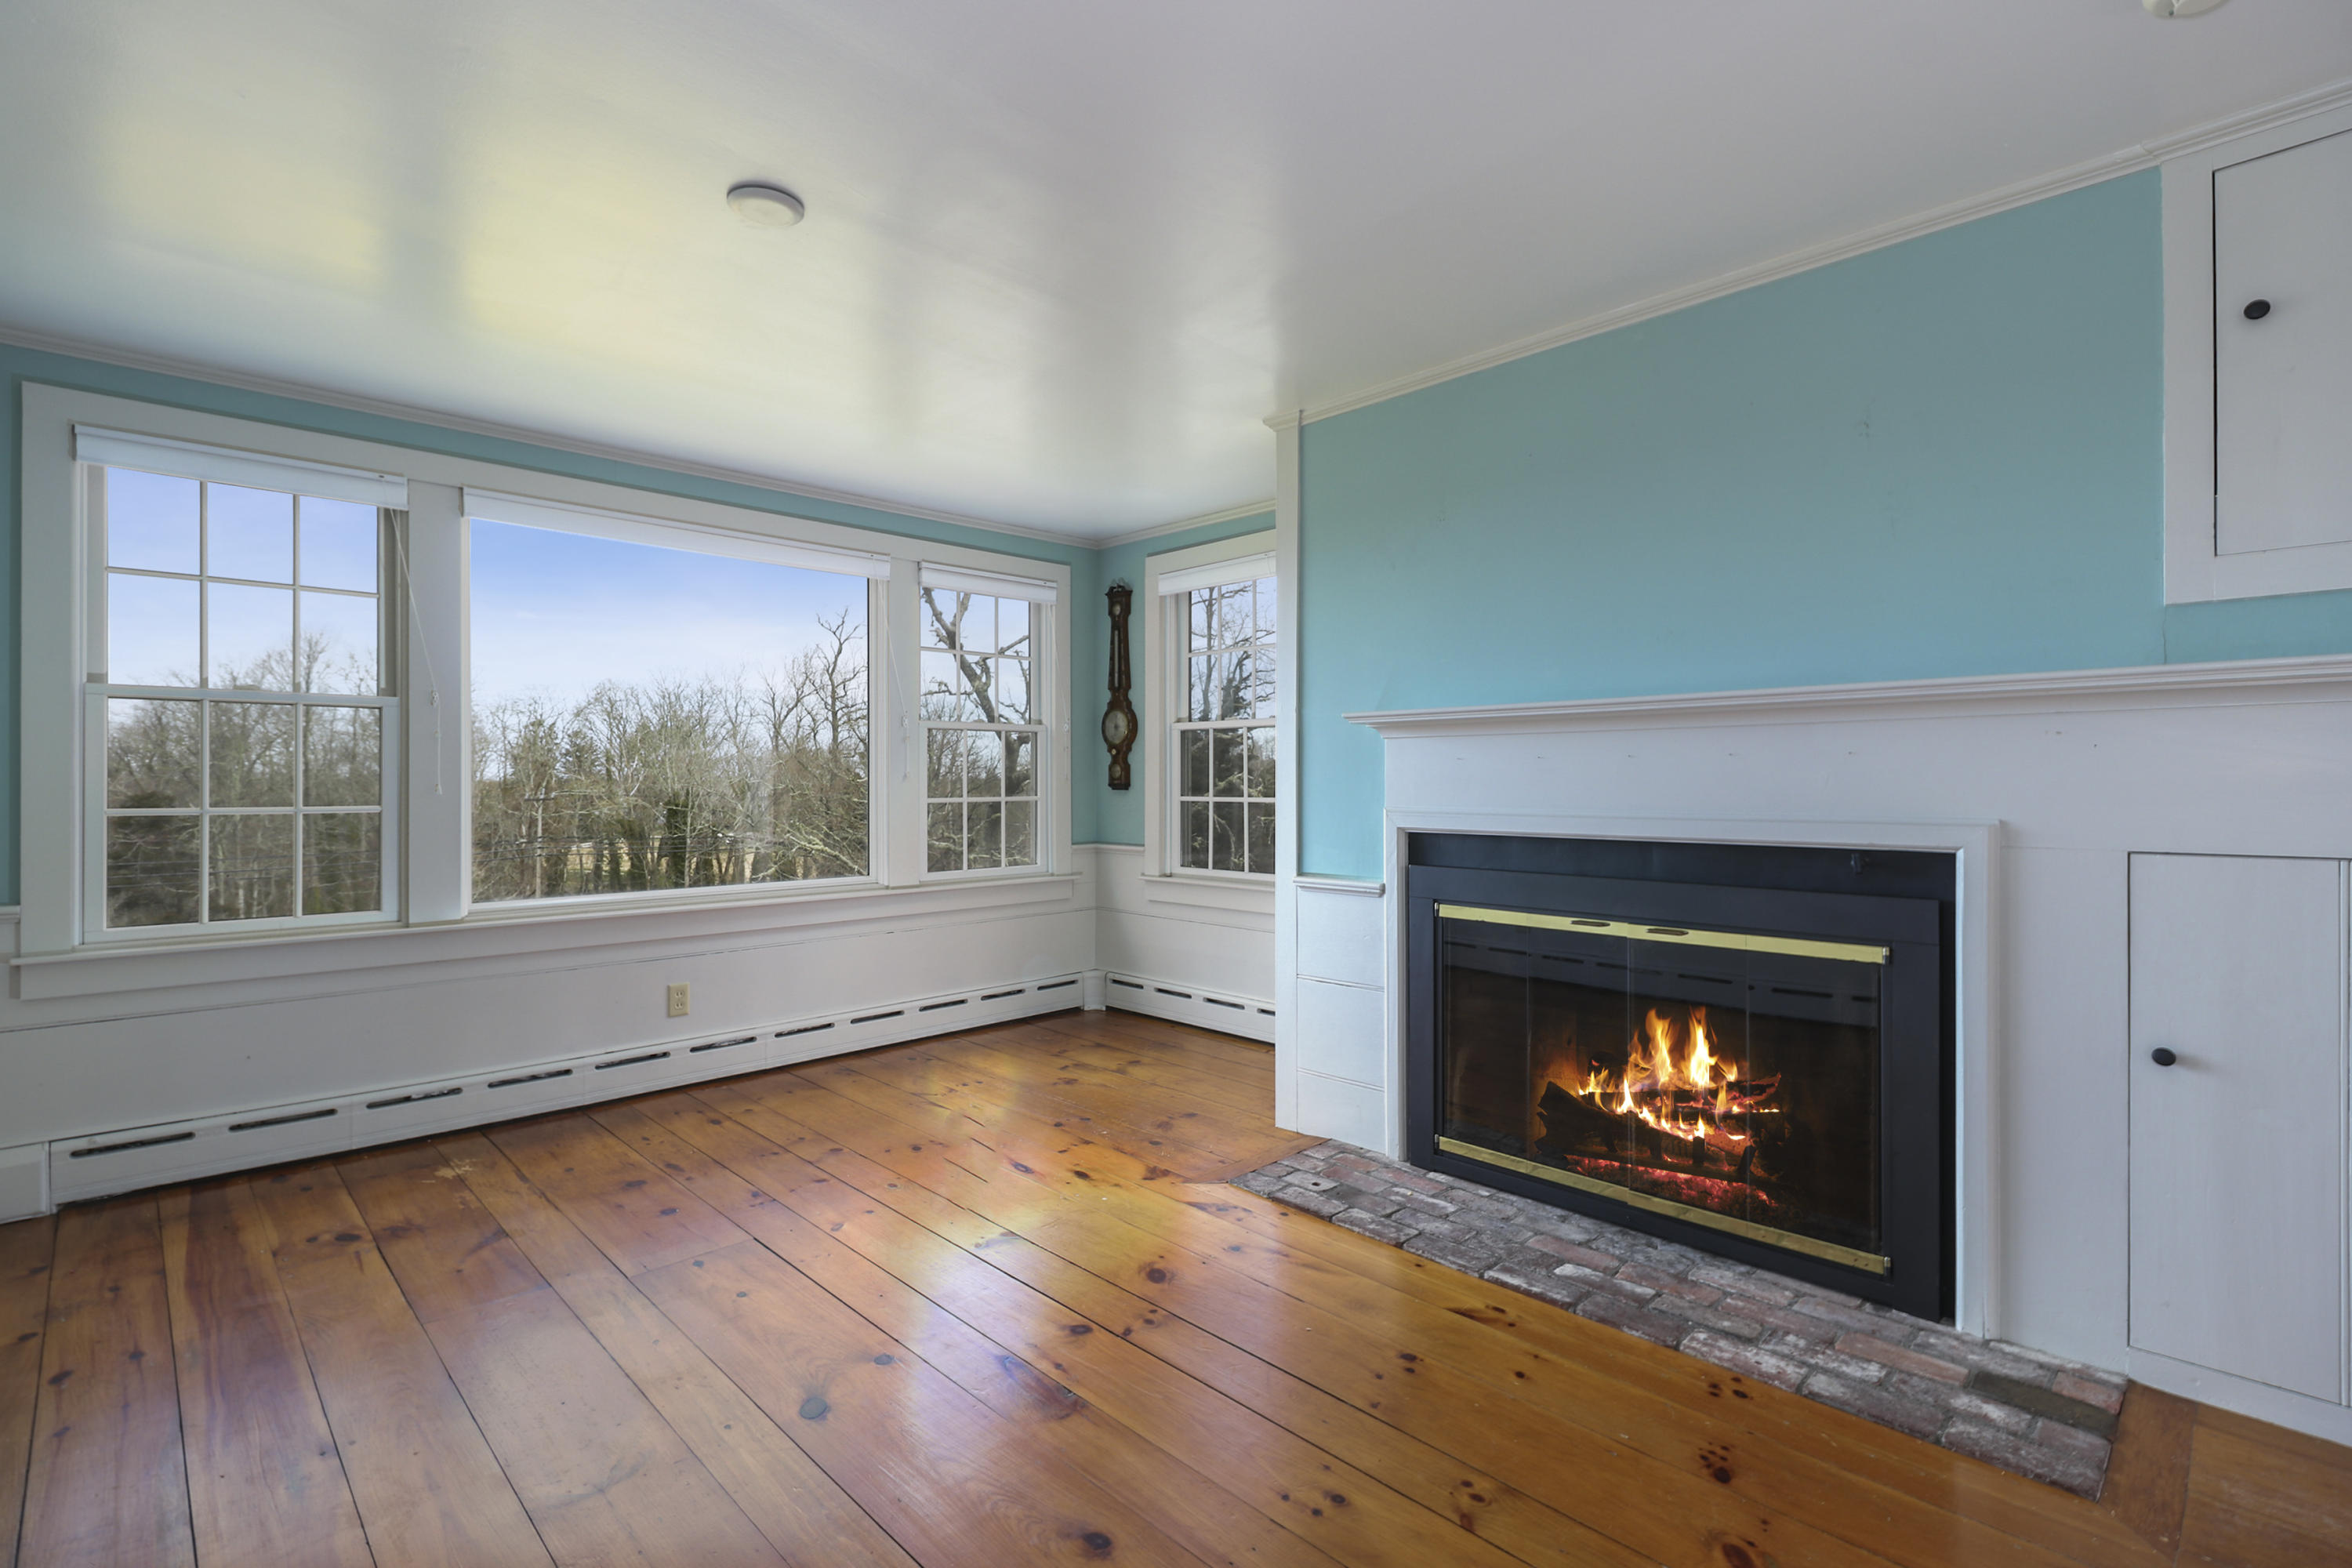 67 tonset road orleans ma 02653 property image 10